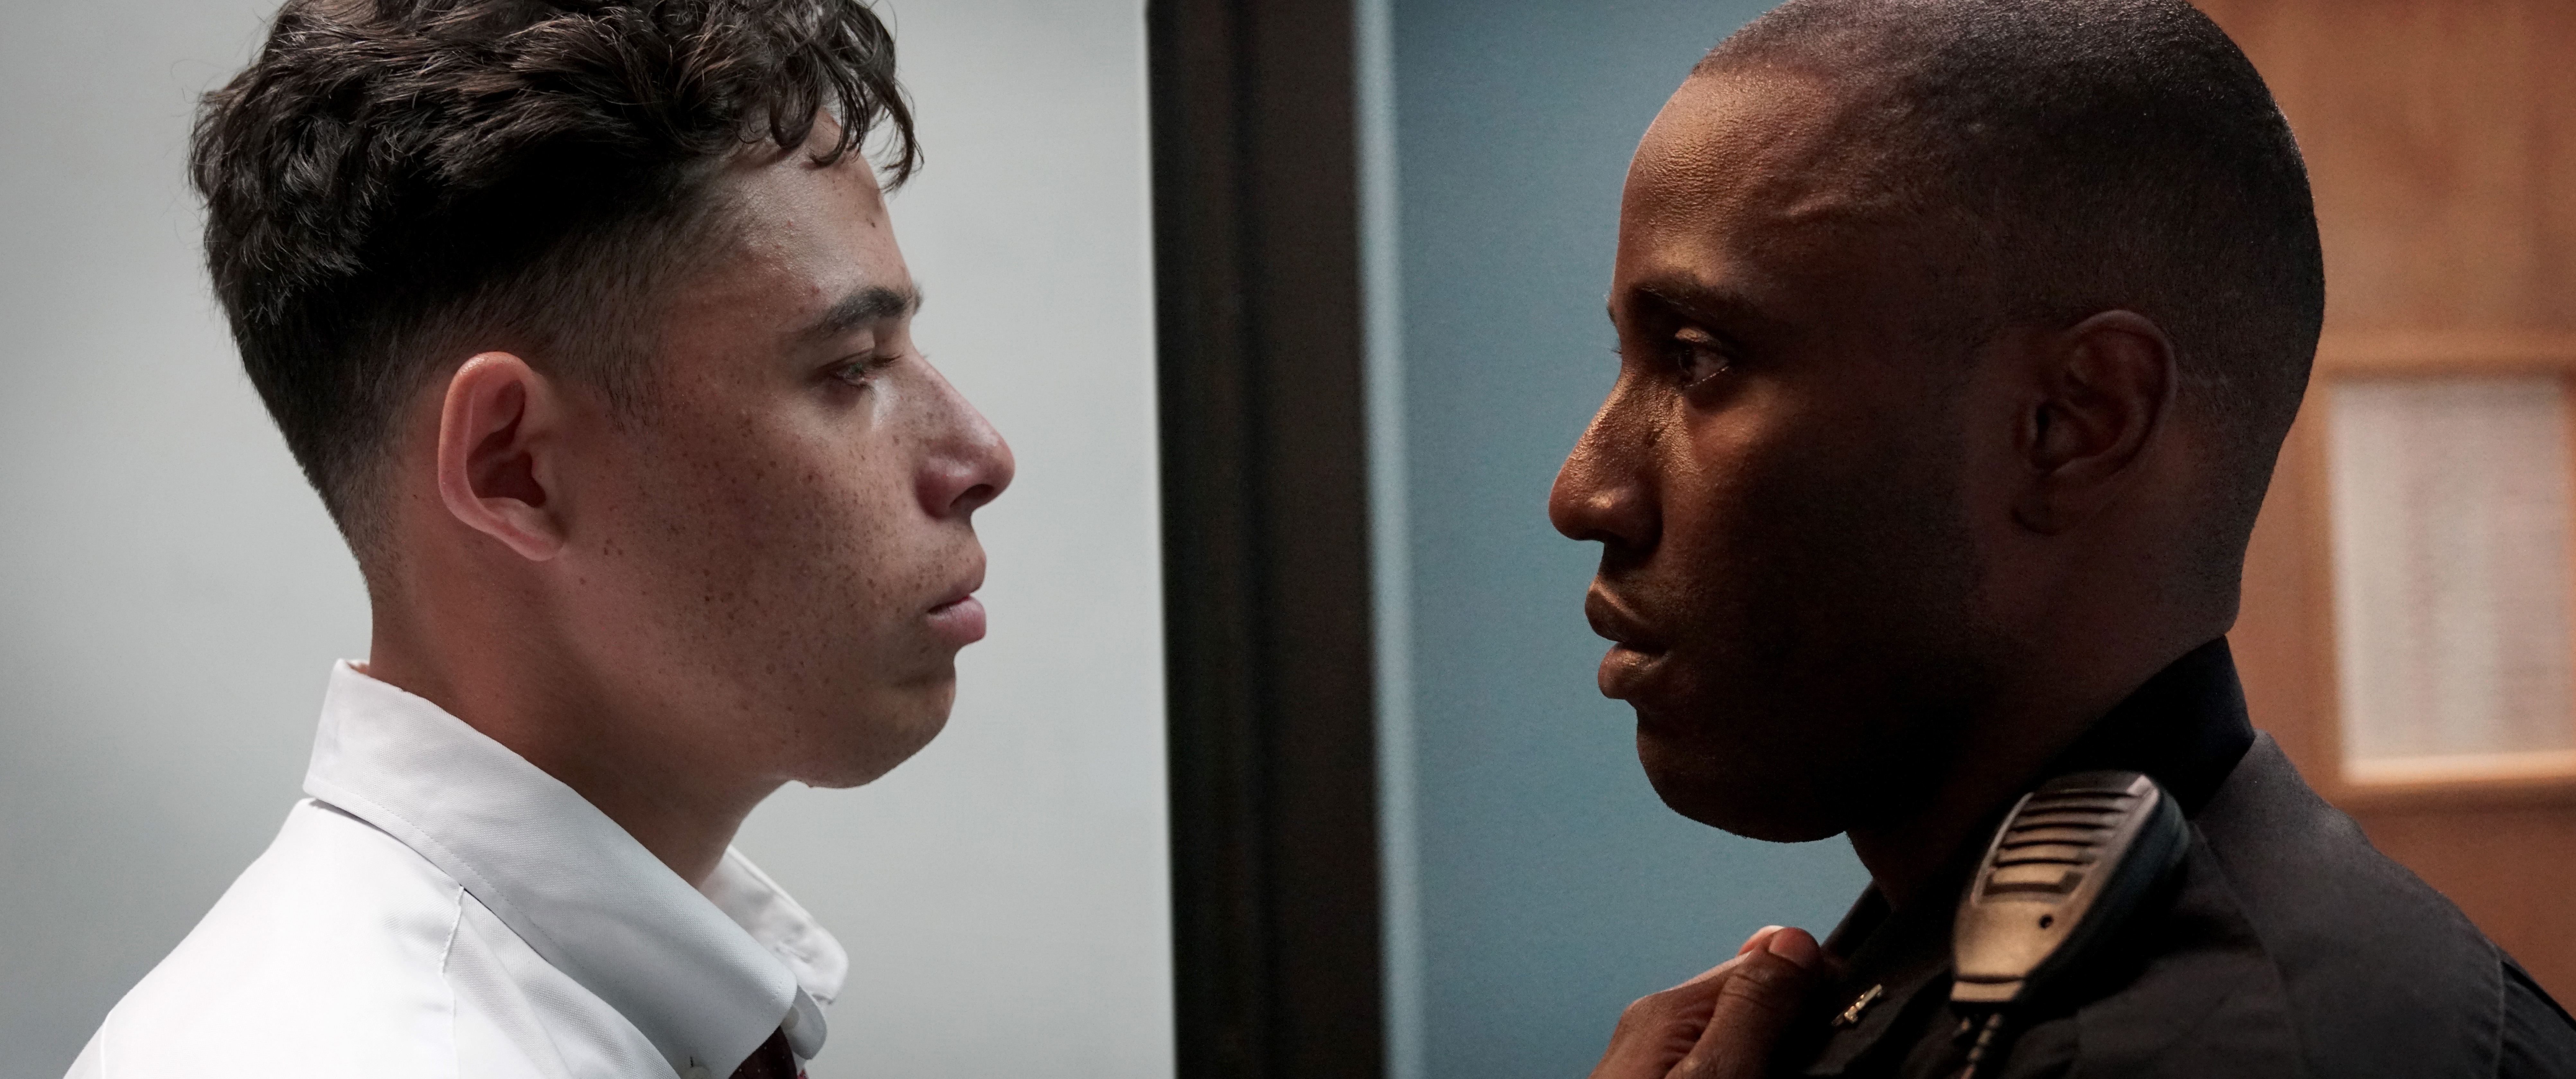 Anthony Ramos and John David Washington appear in <i>Monsters and Men</i> by Reinaldo Marcus Green, an official selection of the U.S. Dramatic Competition at the 2018 Sundance Film Festival. Courtesy of Sundance Institute | photo by Alystyre Julian. All photos are copyrighted and may be used by press only for the purpose of news or editorial coverage of Sundance Institute programs. Photos must be accompanied by a credit to the photographer and/or 'Courtesy of Sundance Institute.' Unauthorized use, alteration, reproduction or sale of logos and/or photos is strictly prohibited.